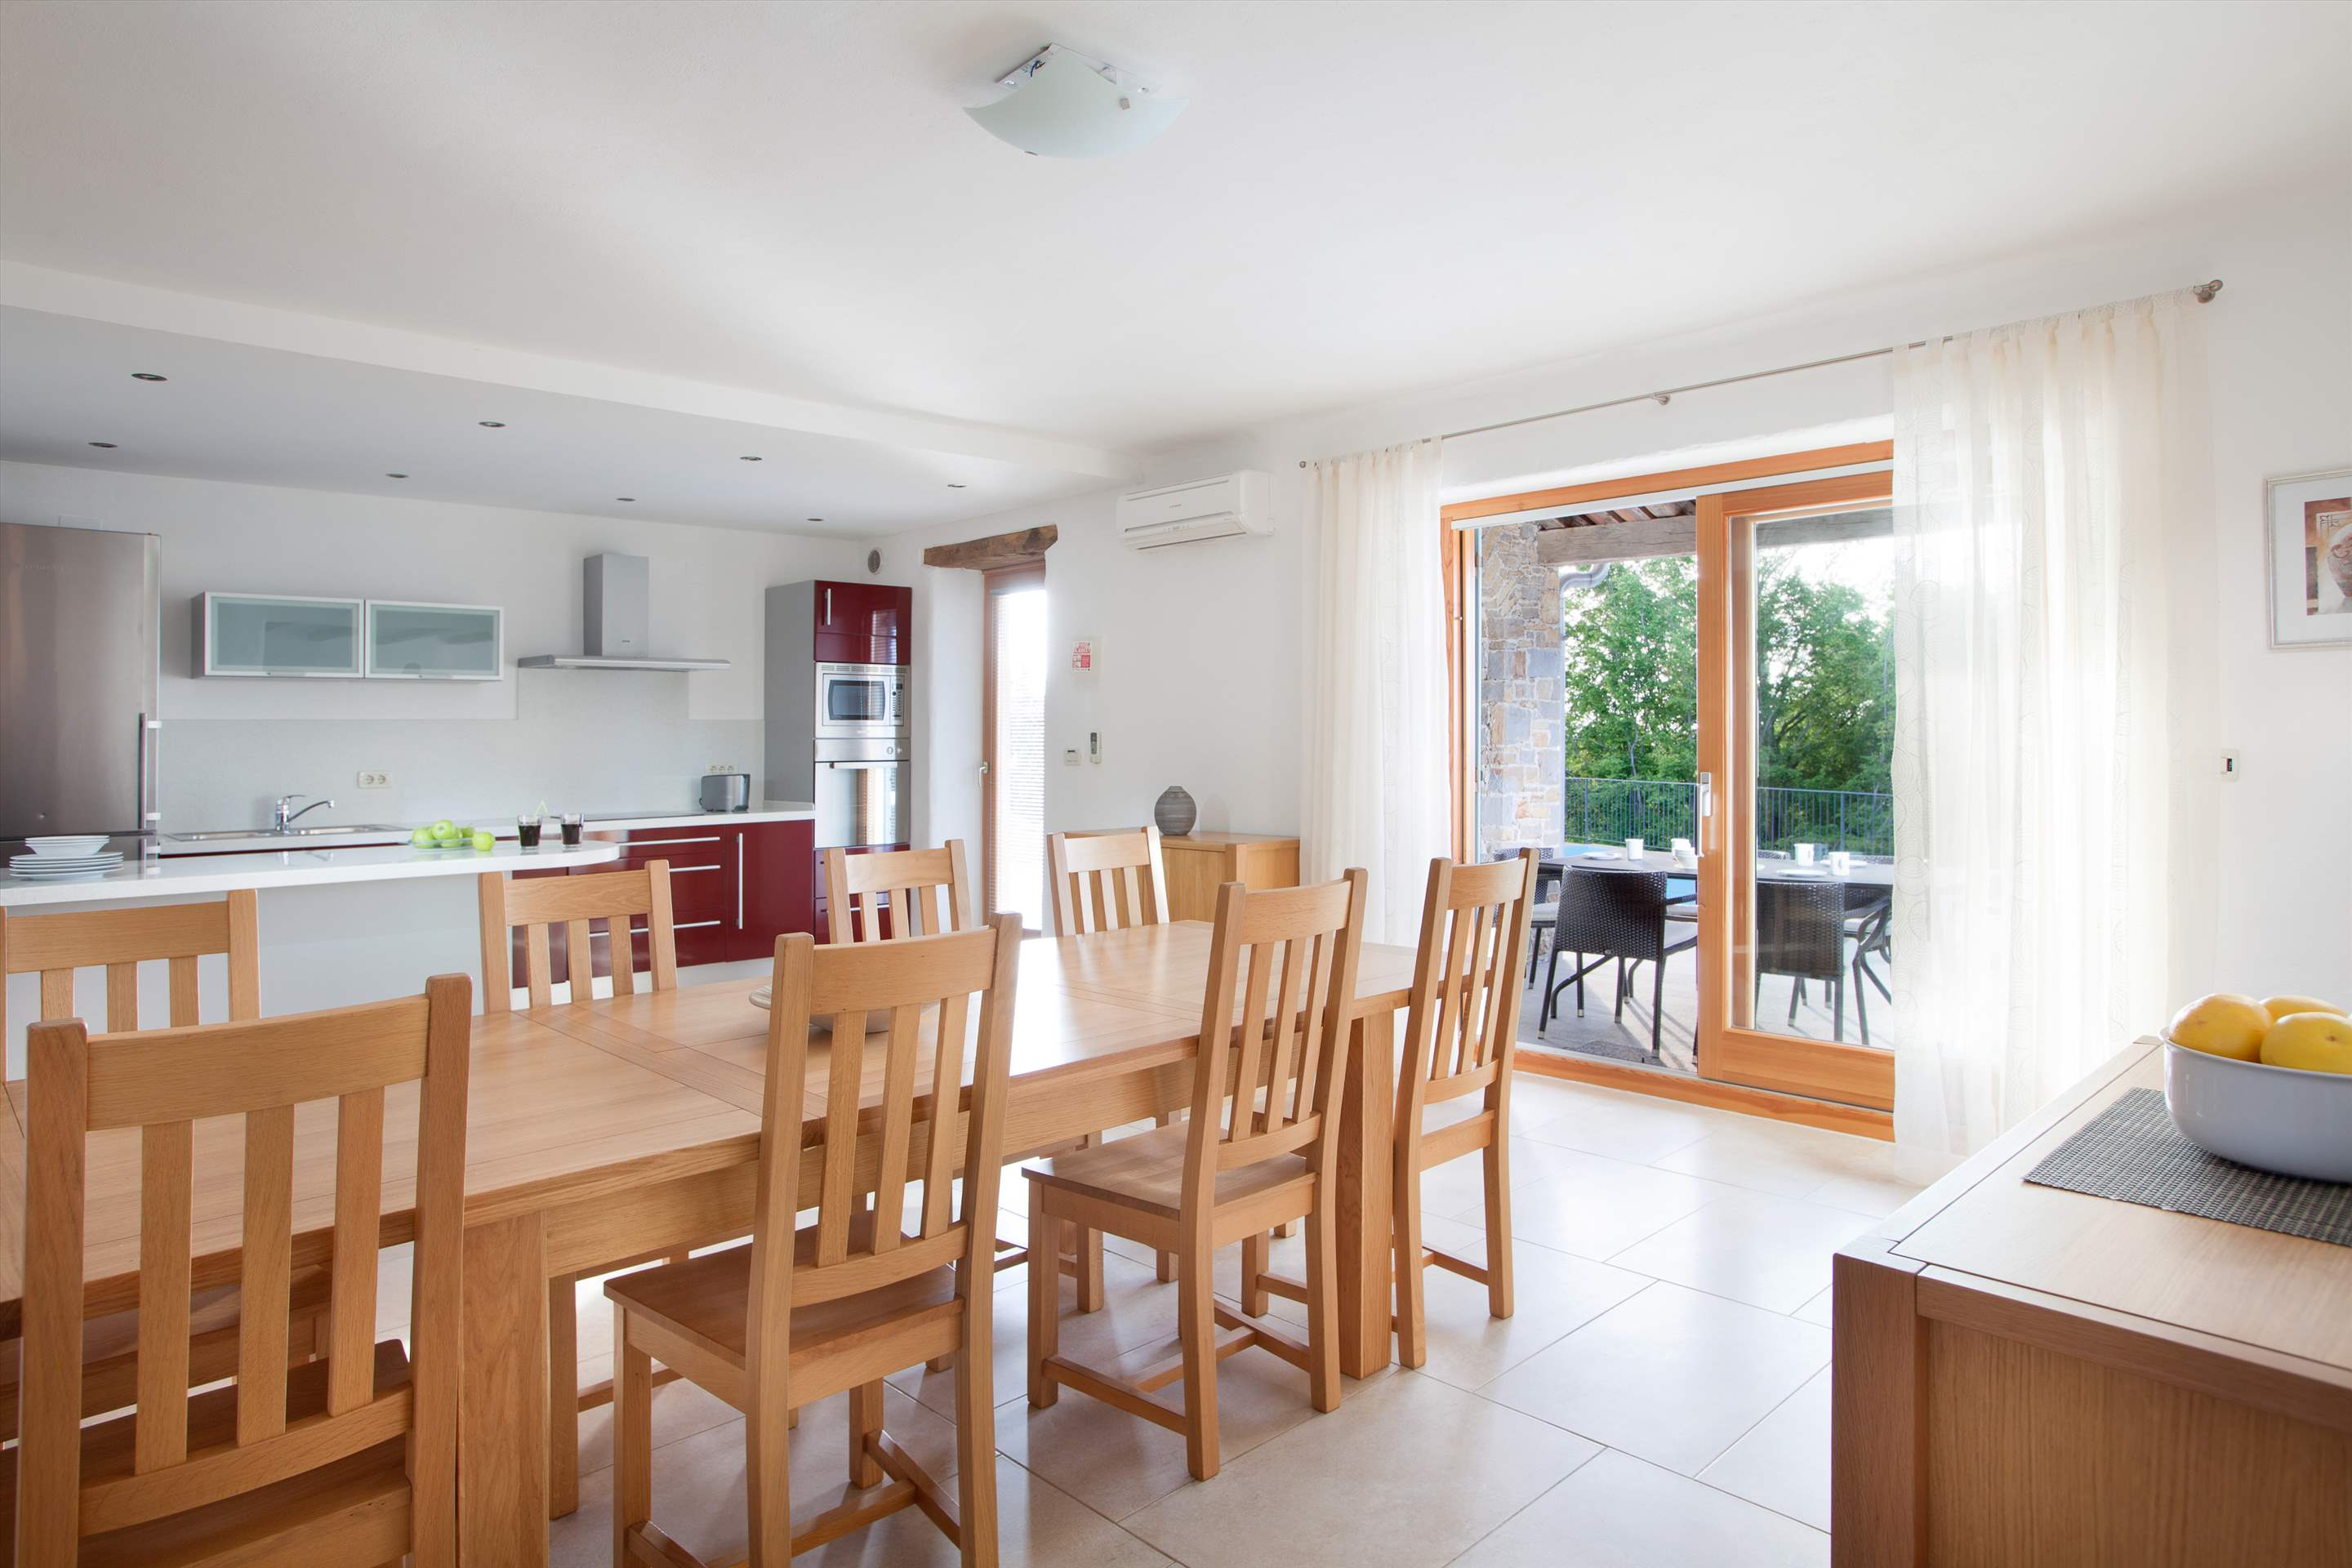 Villa Daymond, 4 bedroom villa in Western Coast- Porec - Umag & Inland, Croatia Photo #5